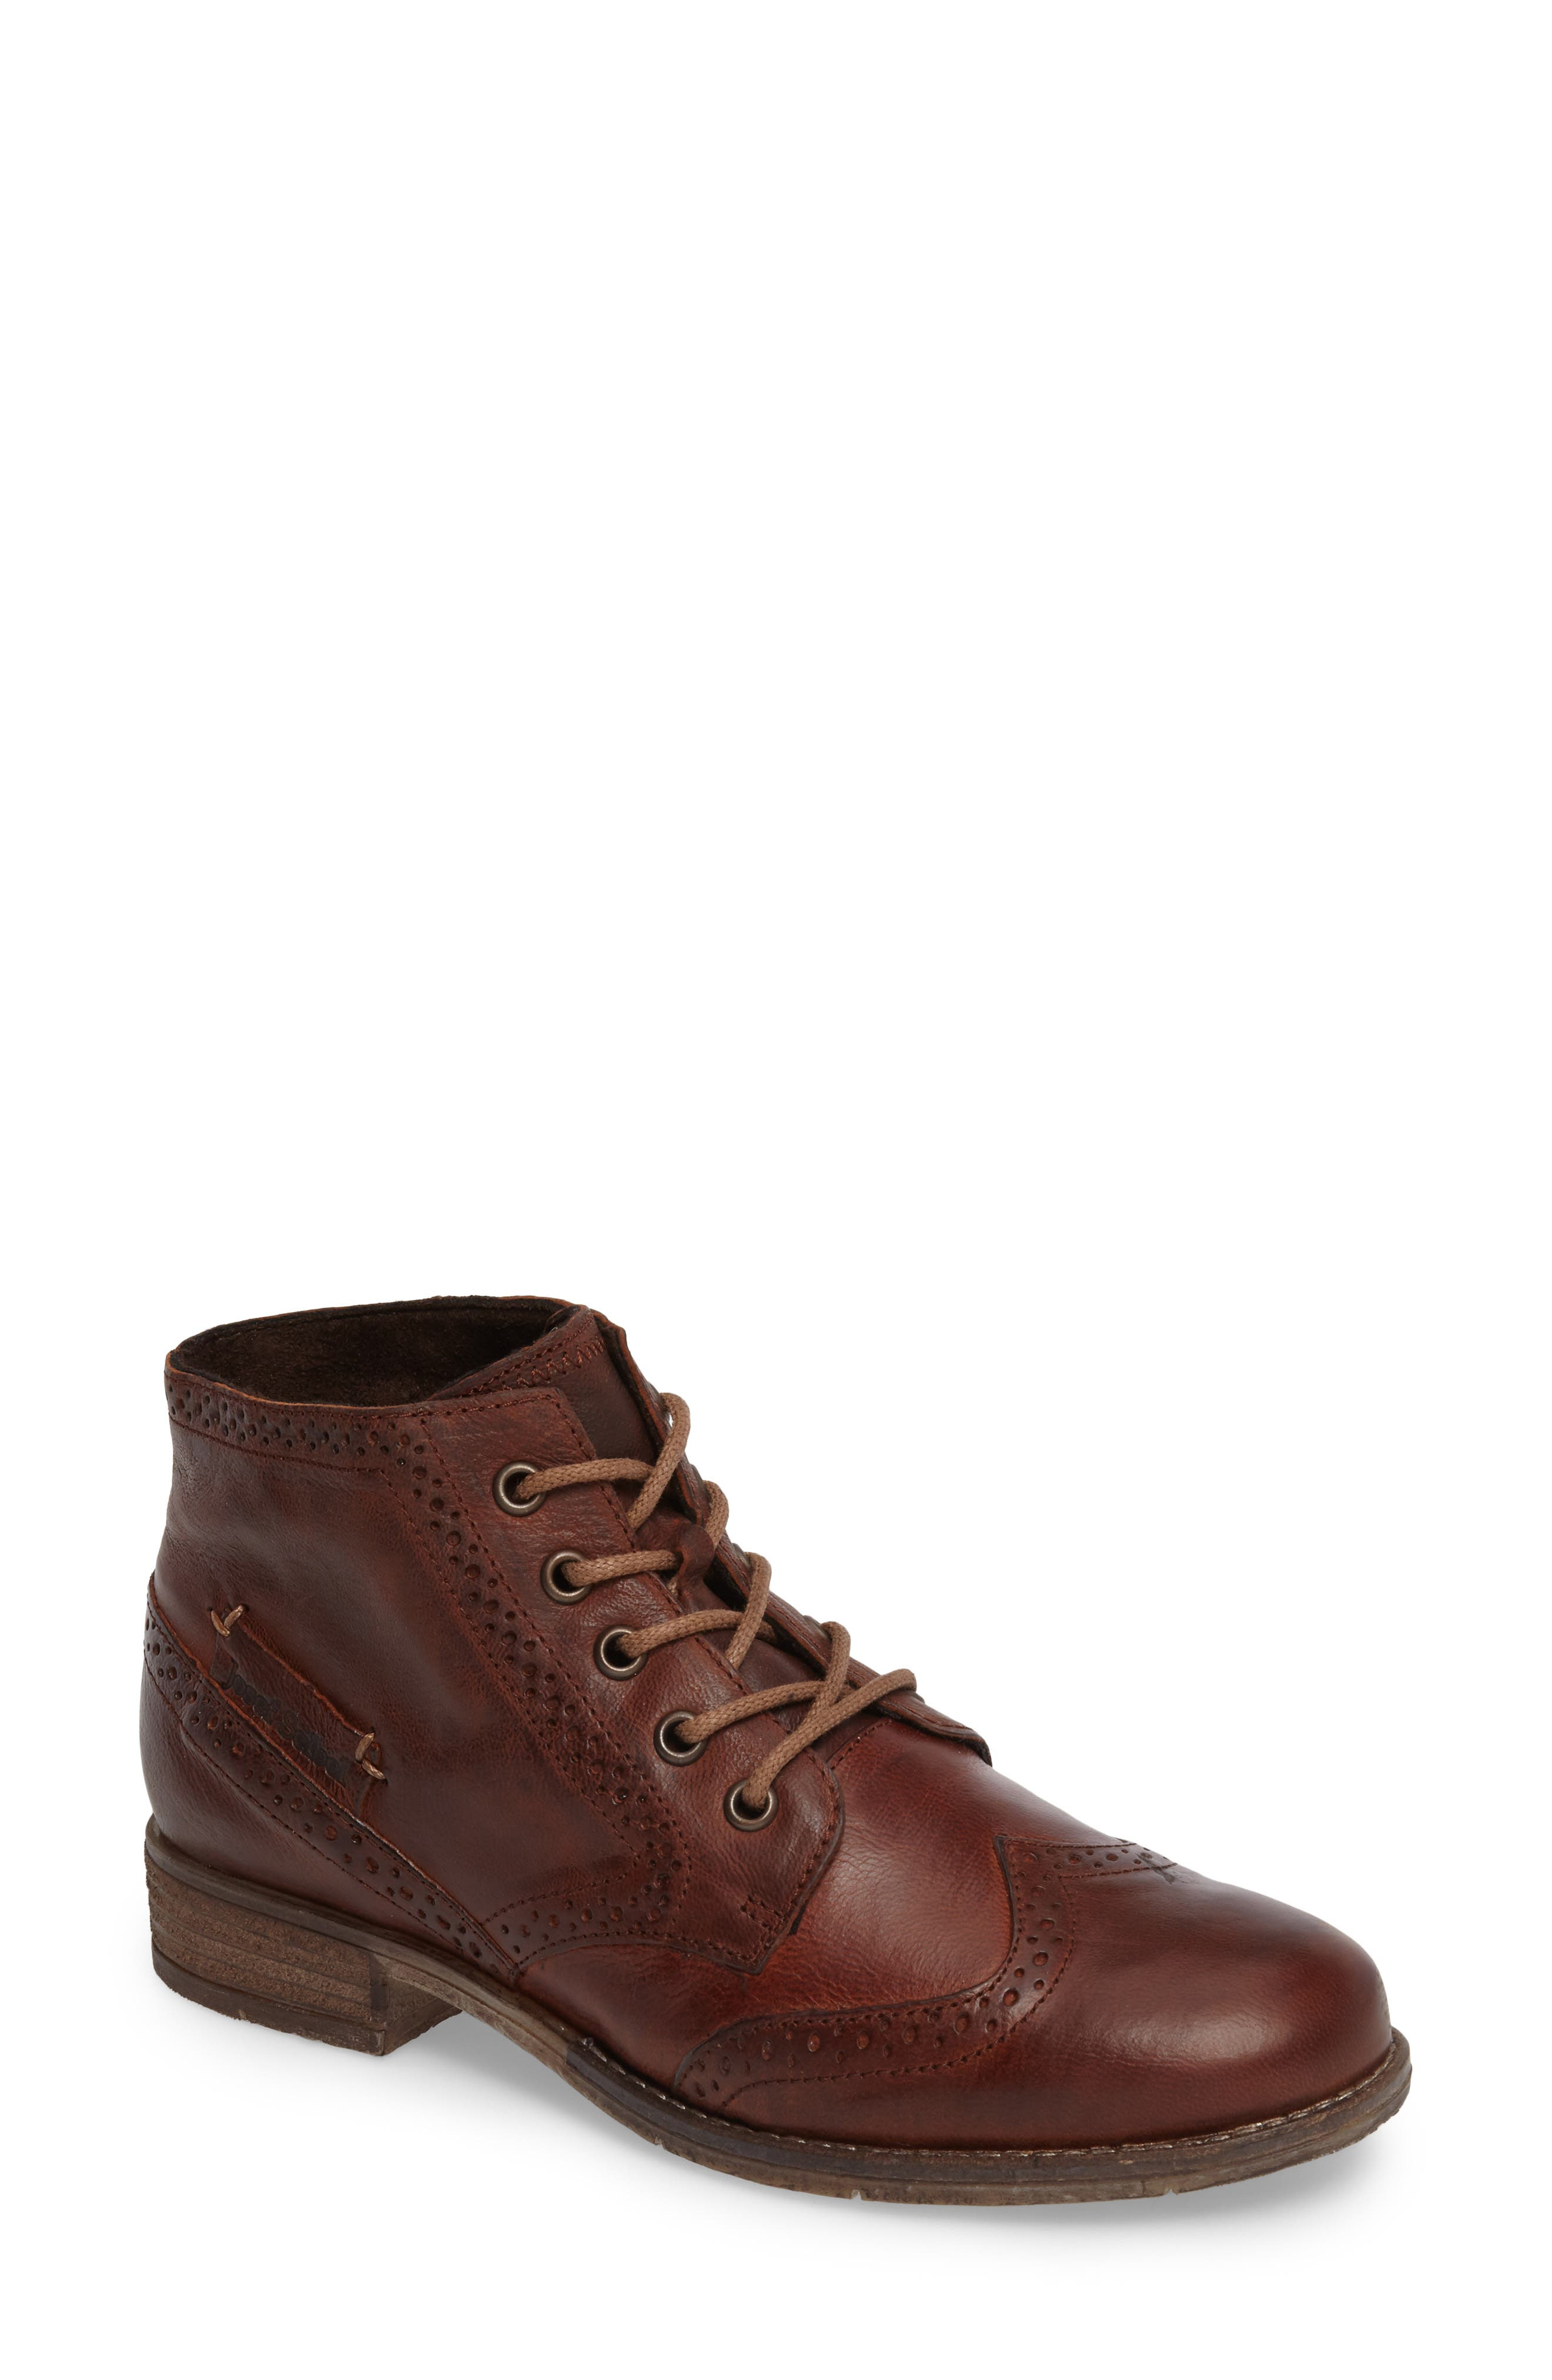 'Sienna 15' Wingtip Bootie,                             Main thumbnail 1, color,                             Camel Leather